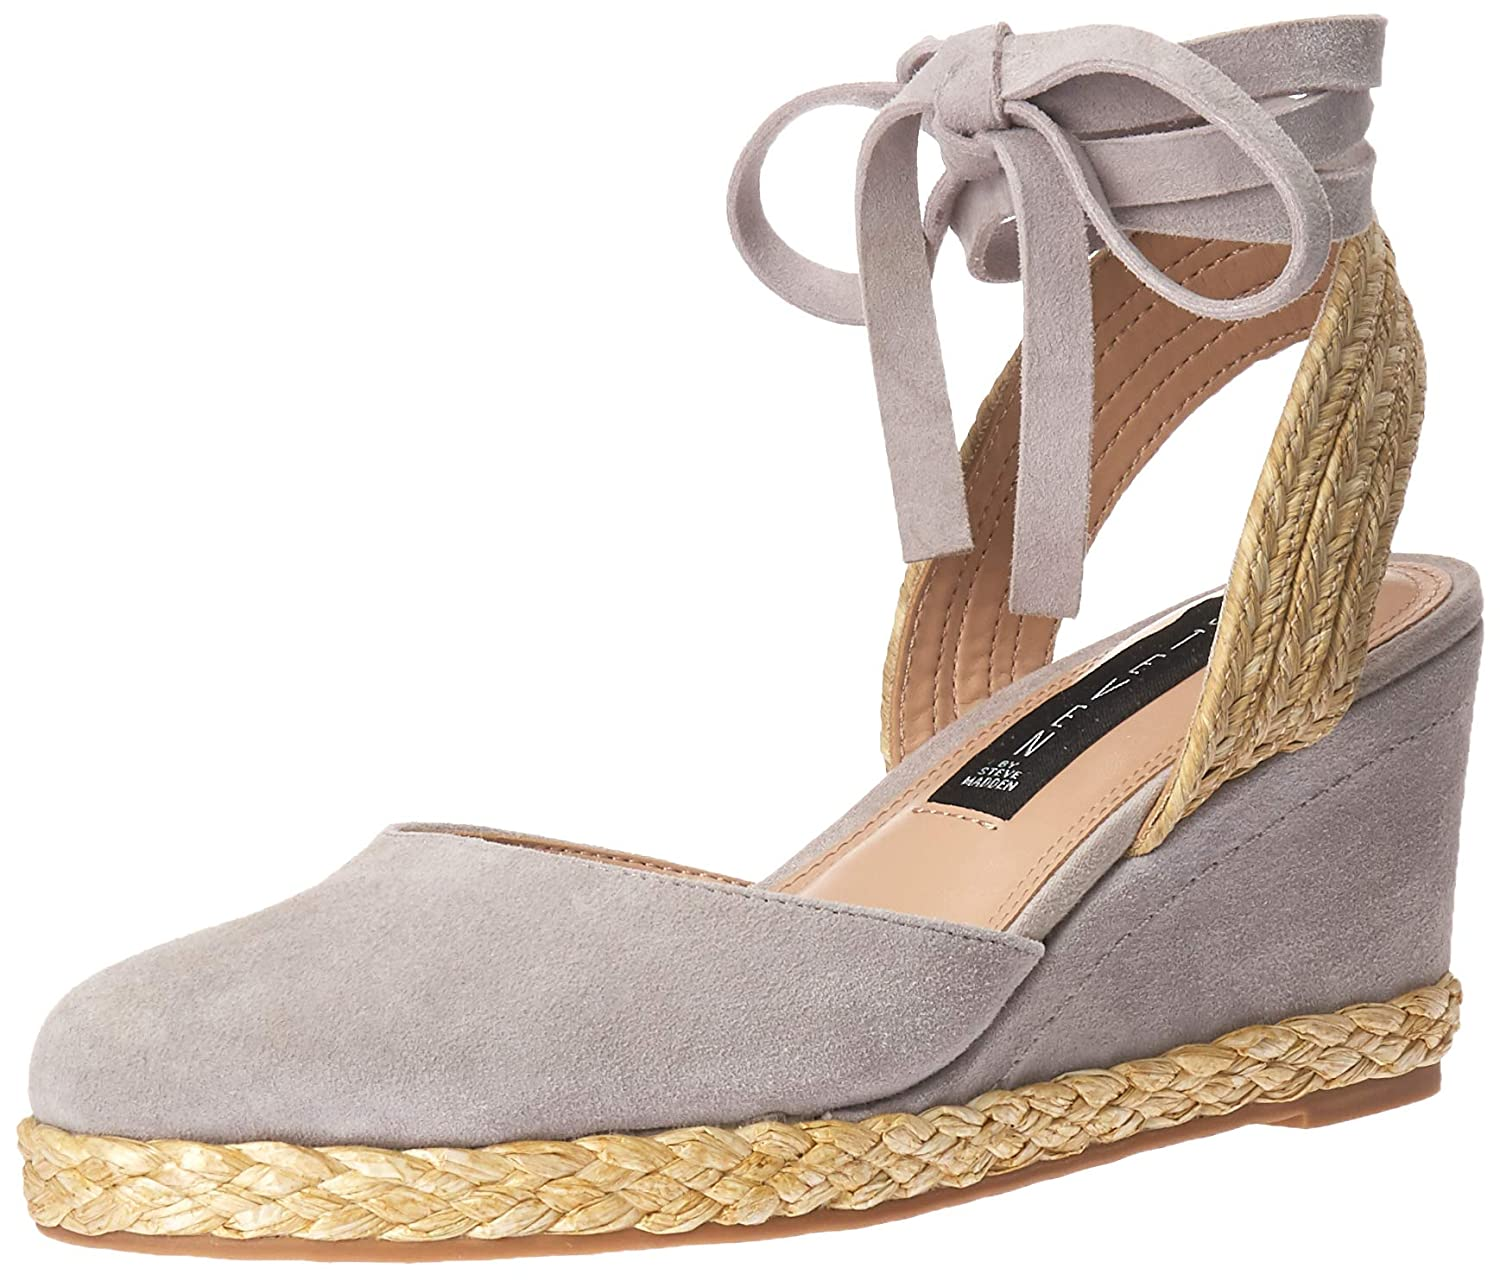 Grey Suede STEVEN by Steve Madden Womens Charly Sandal